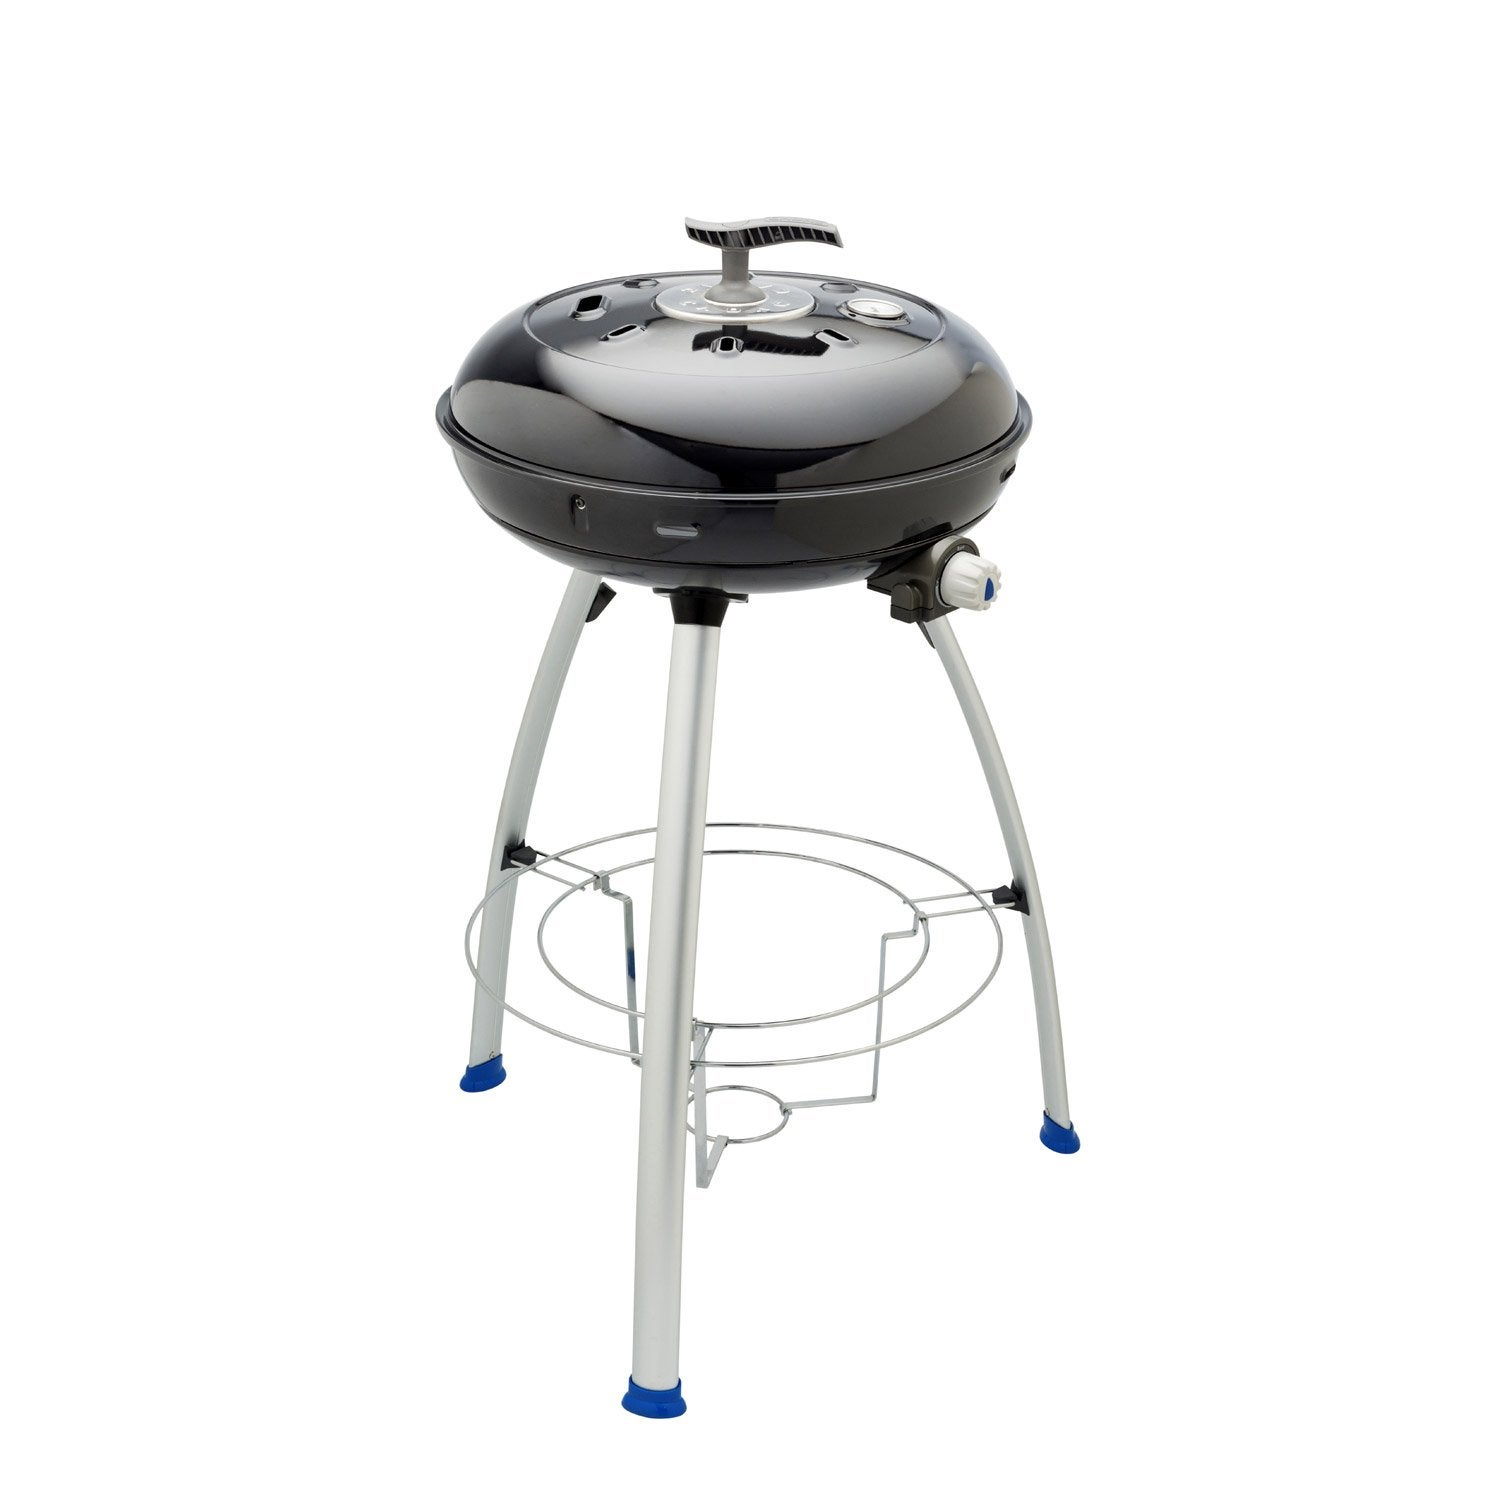 Barbecue au gaz city chef 1 bruleur cadac leroy merlin for Barbecue a gaz leroy merlin